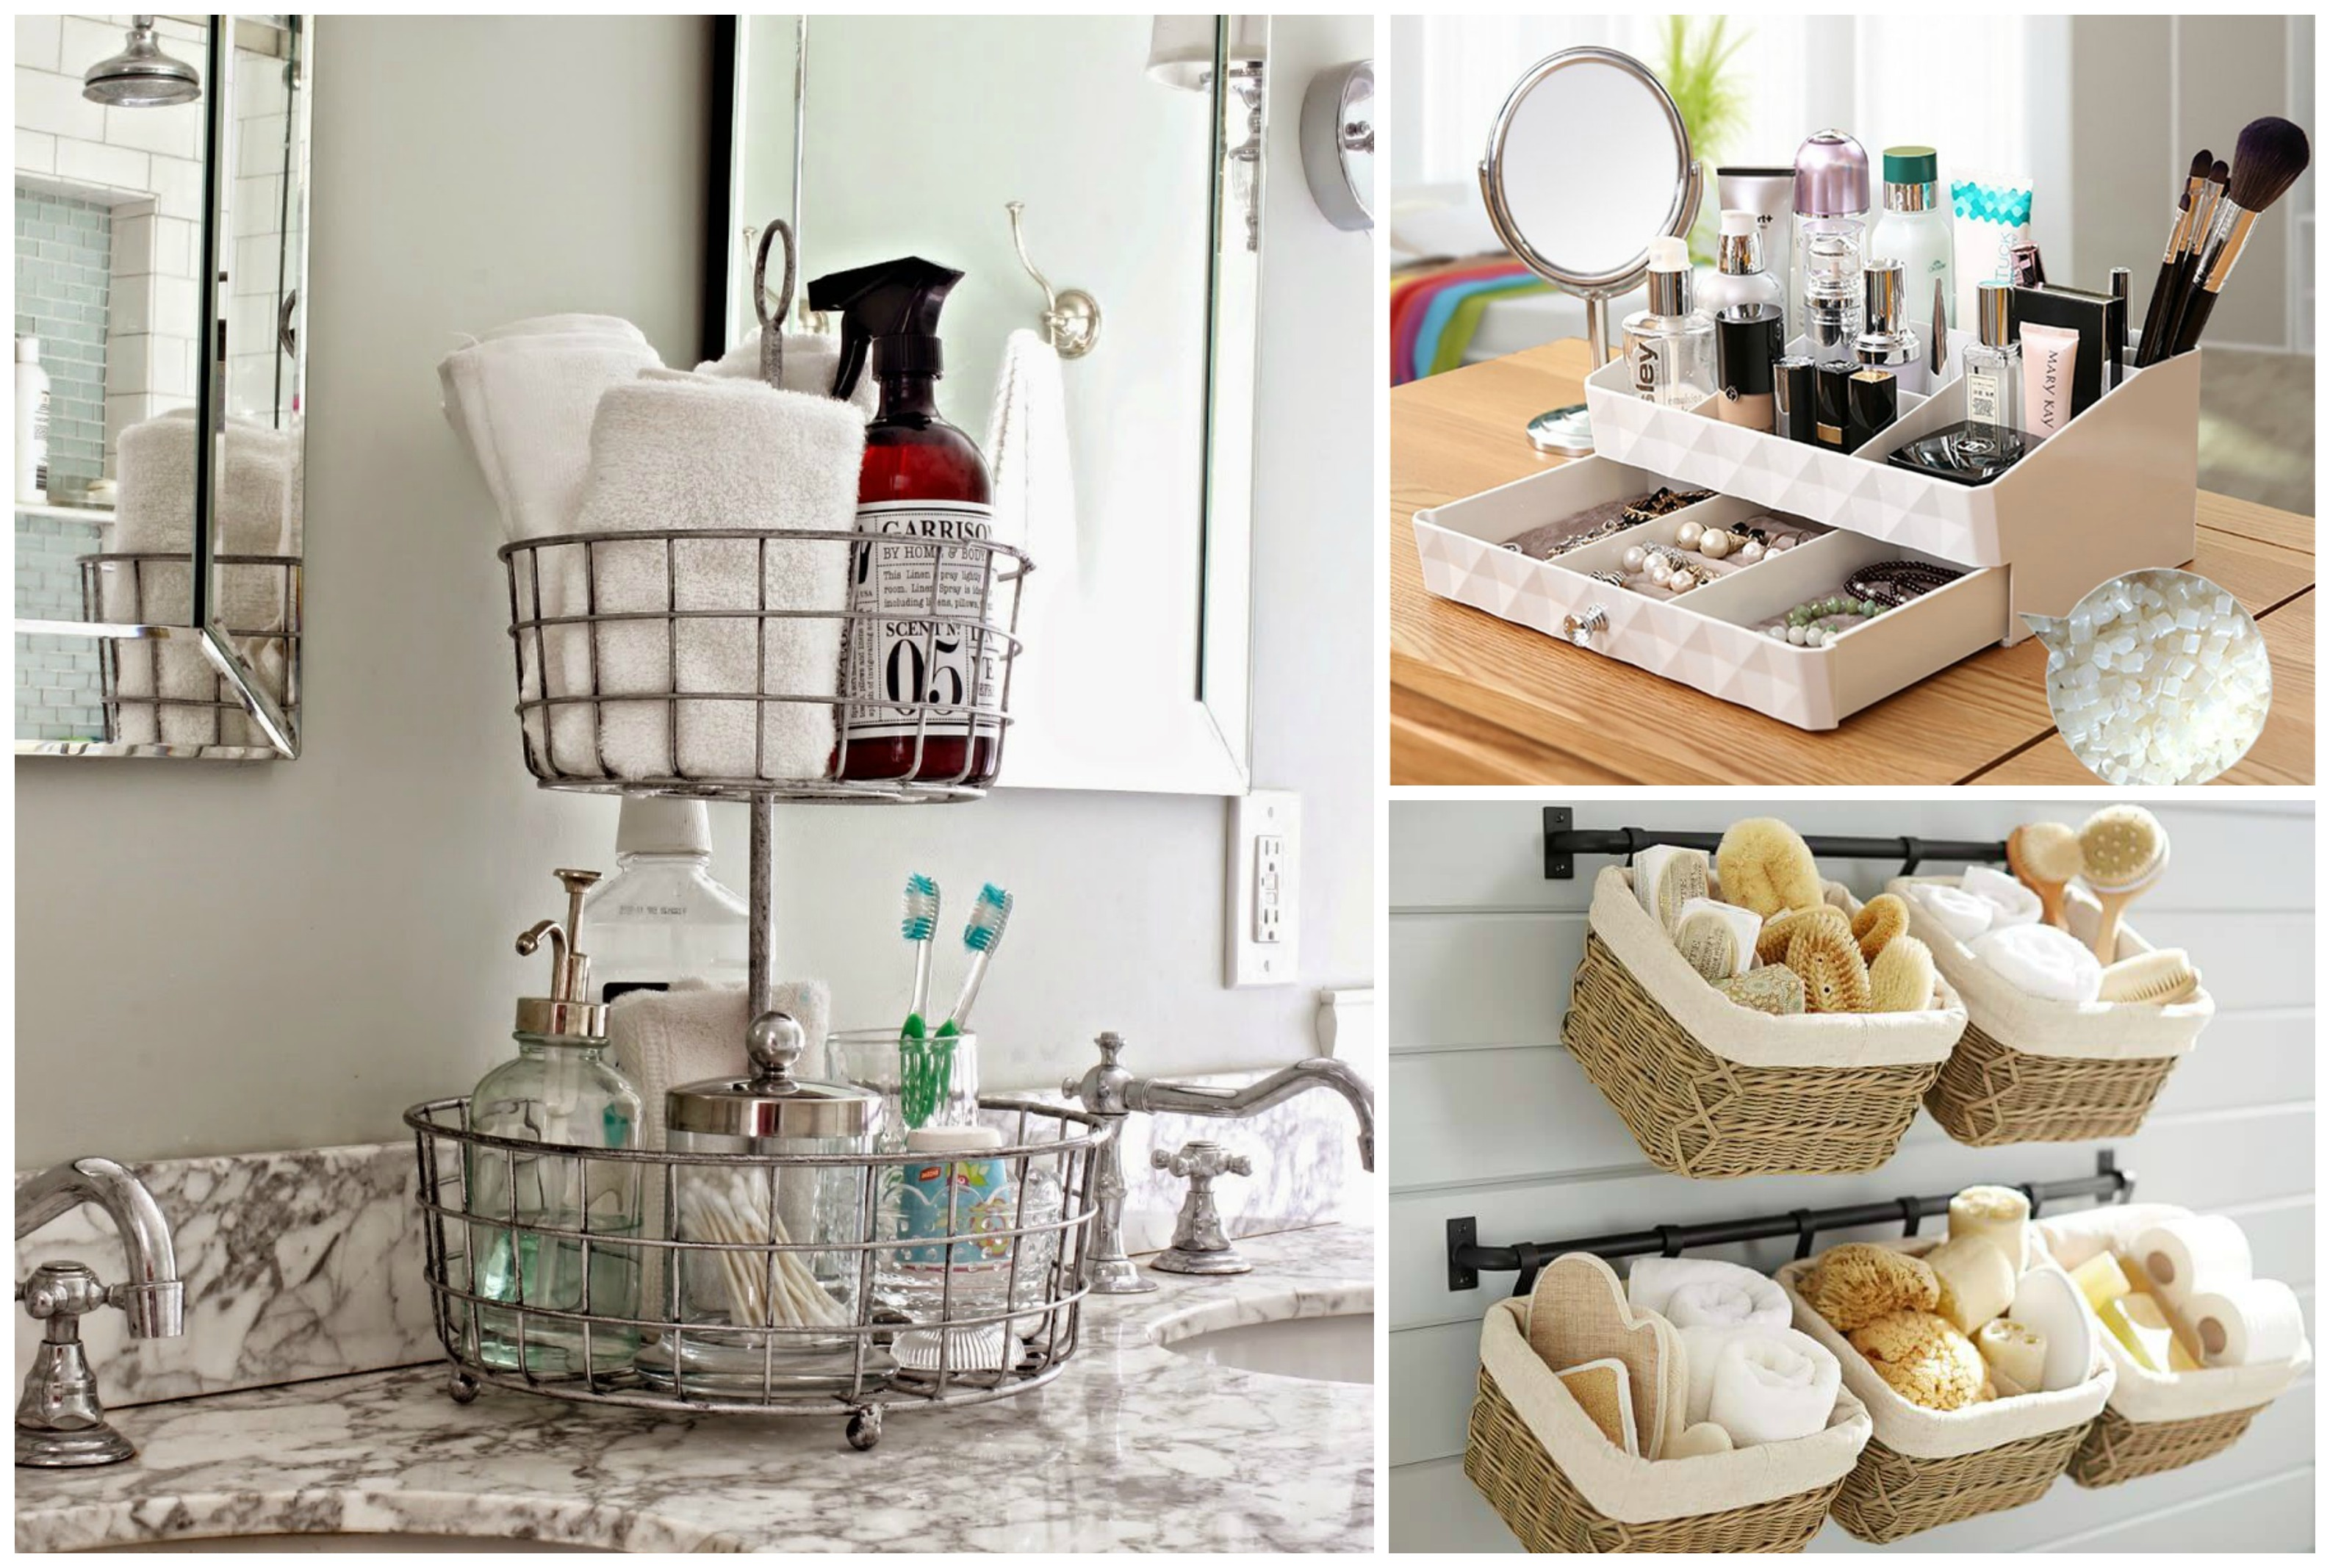 How To Organize A Bathroom 13 Brilliant Ways To Organize Your Bathroom